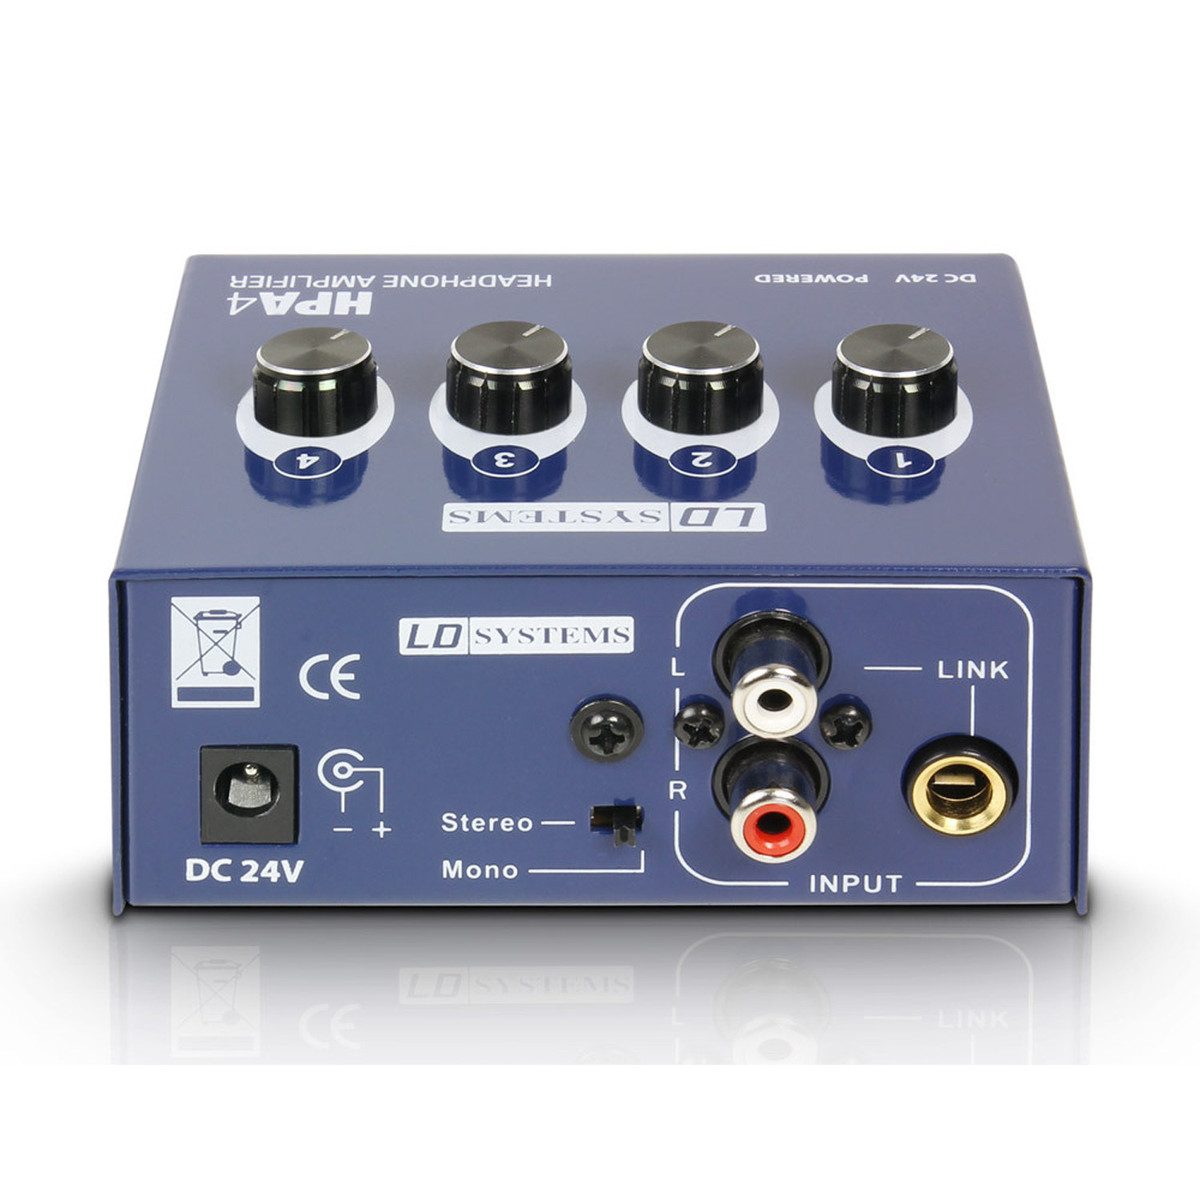 Ld Systems Hpa 4 Channel Headphone Amplifier At Gear4music Audio System Rear Loading Zoom